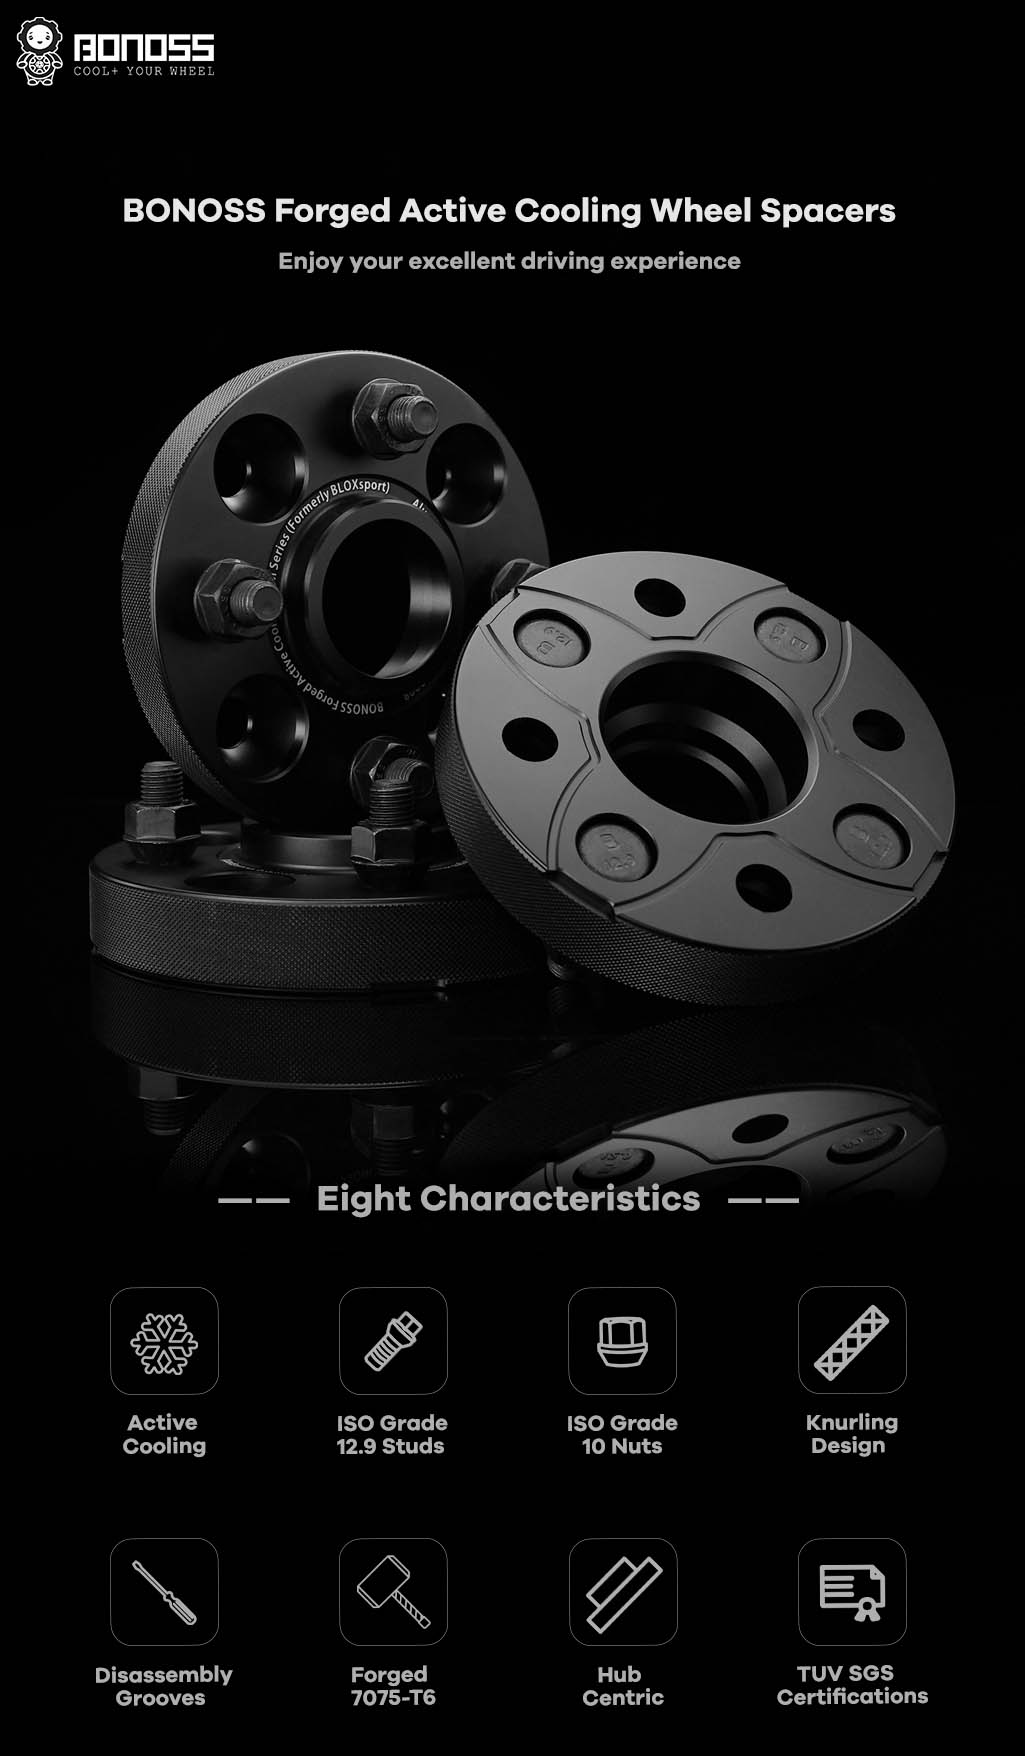 AL7075-T6 BONOSS-forged-active-cooling-hubcentric 4x100 wheel-spacer-by-lulu-1